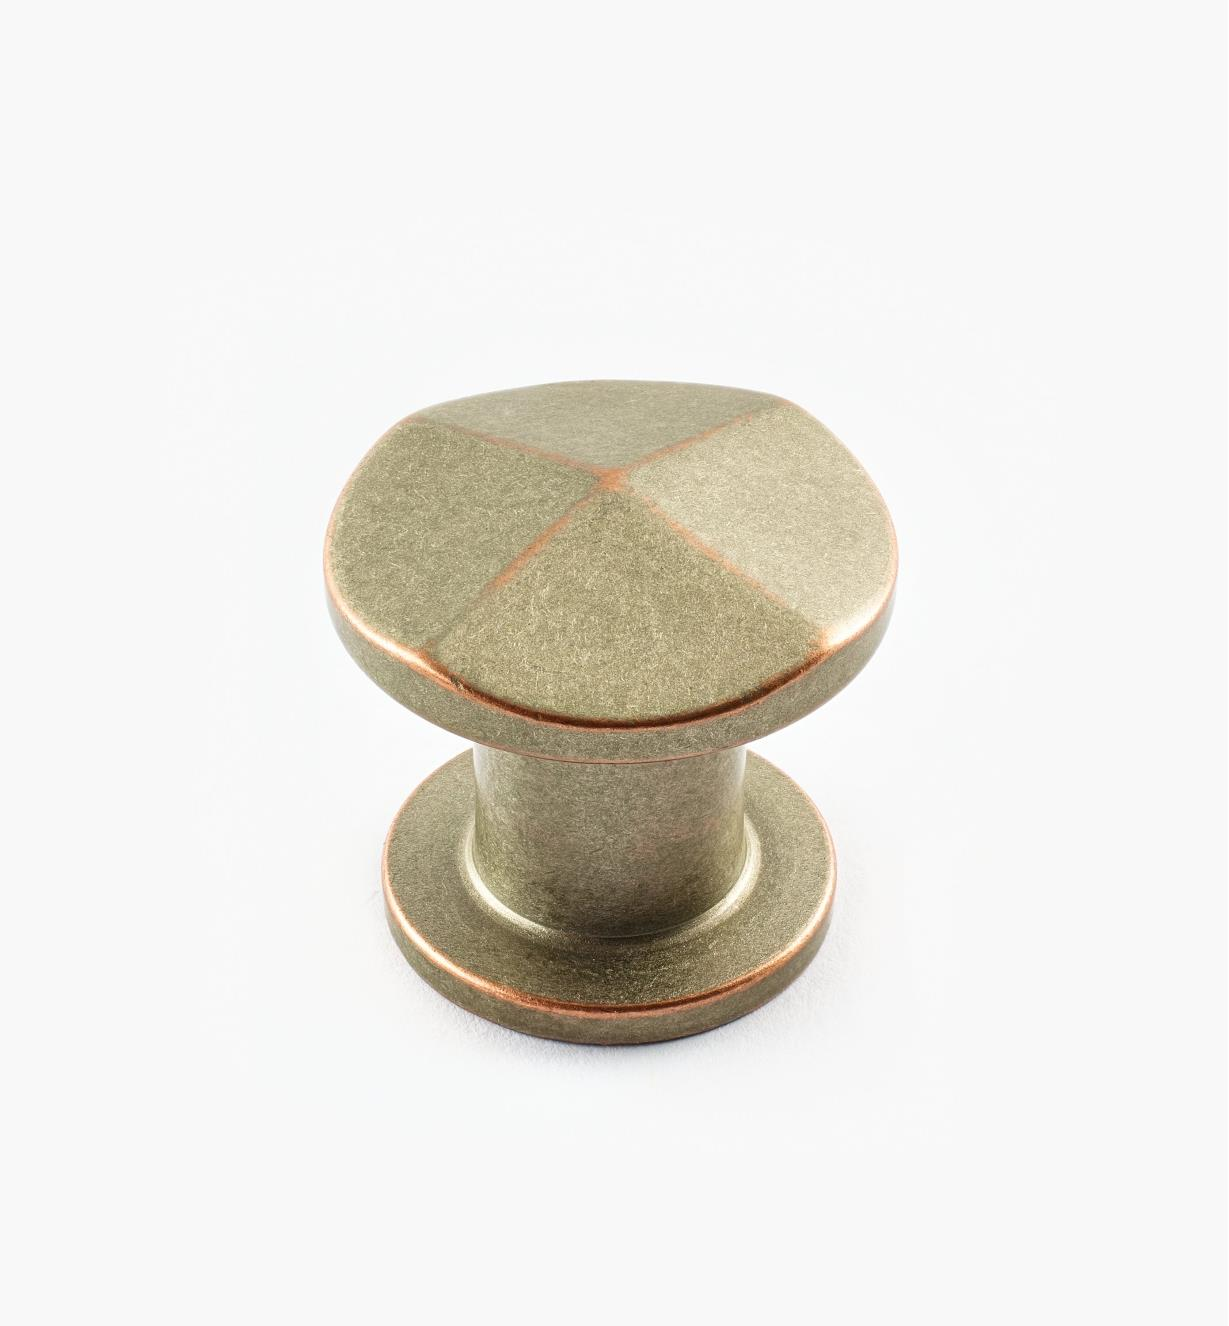 02A1512 - 30mm x 27mm Weathered Nickel-Copper Pyramidal Knob